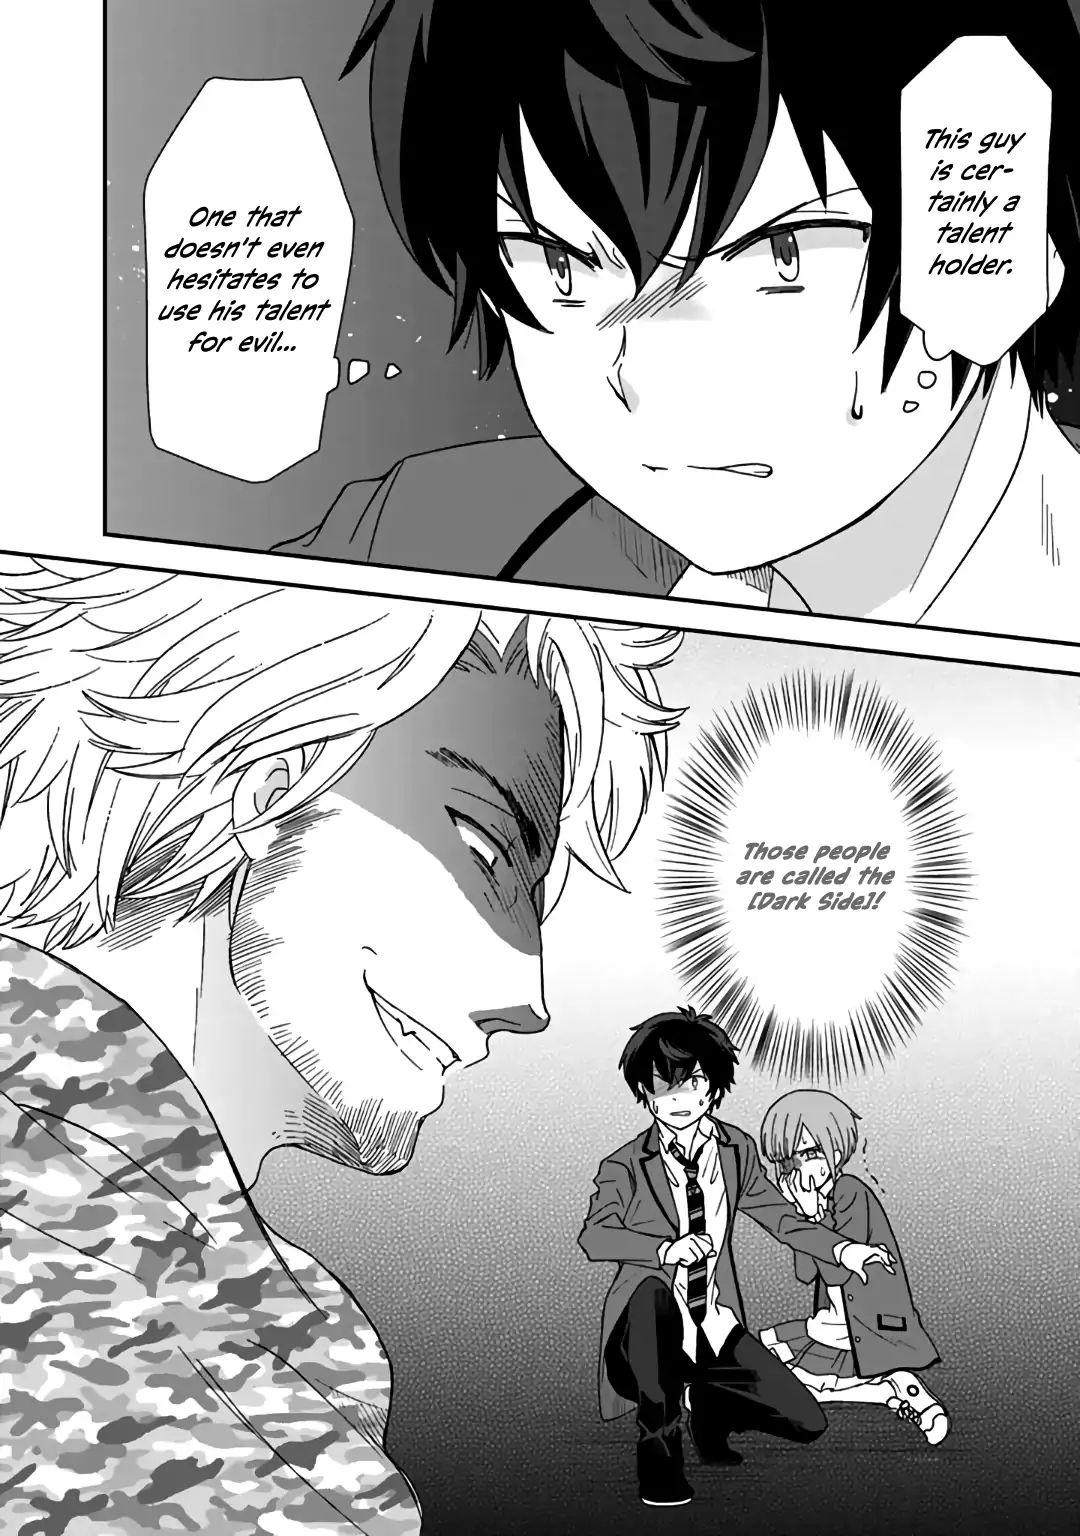 I, Who Possessed A Trash Skill 【Thermal Operator】, Became Unrivaled. Chapter 7 page 17 - Mangakakalots.com